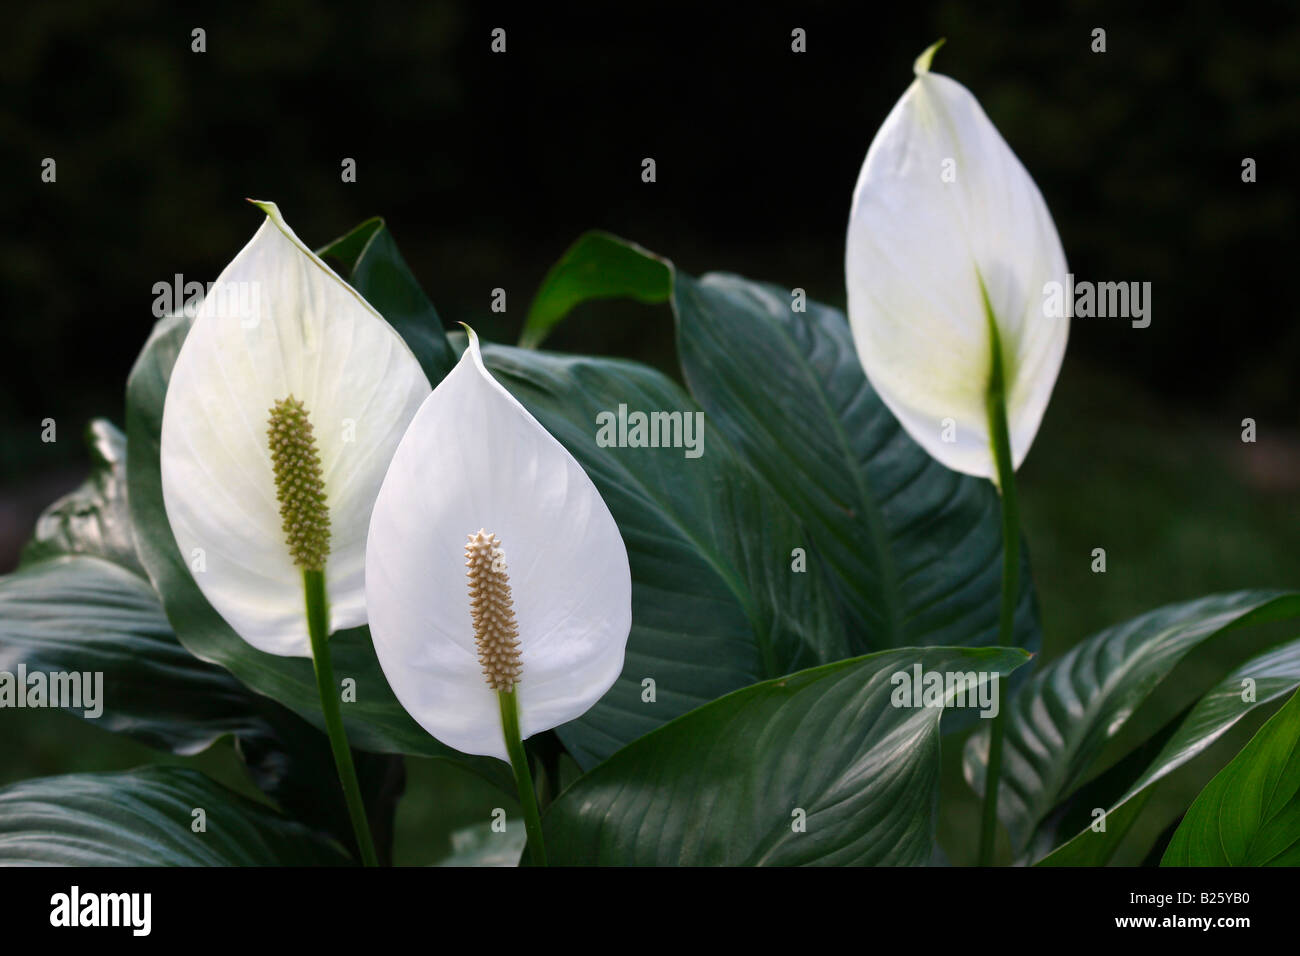 White peace lily spathiphyllum flowers houseplants close up closeup white peace lily spathiphyllum flowers houseplants close up closeup no not people nobody display isolated in usa izmirmasajfo Gallery